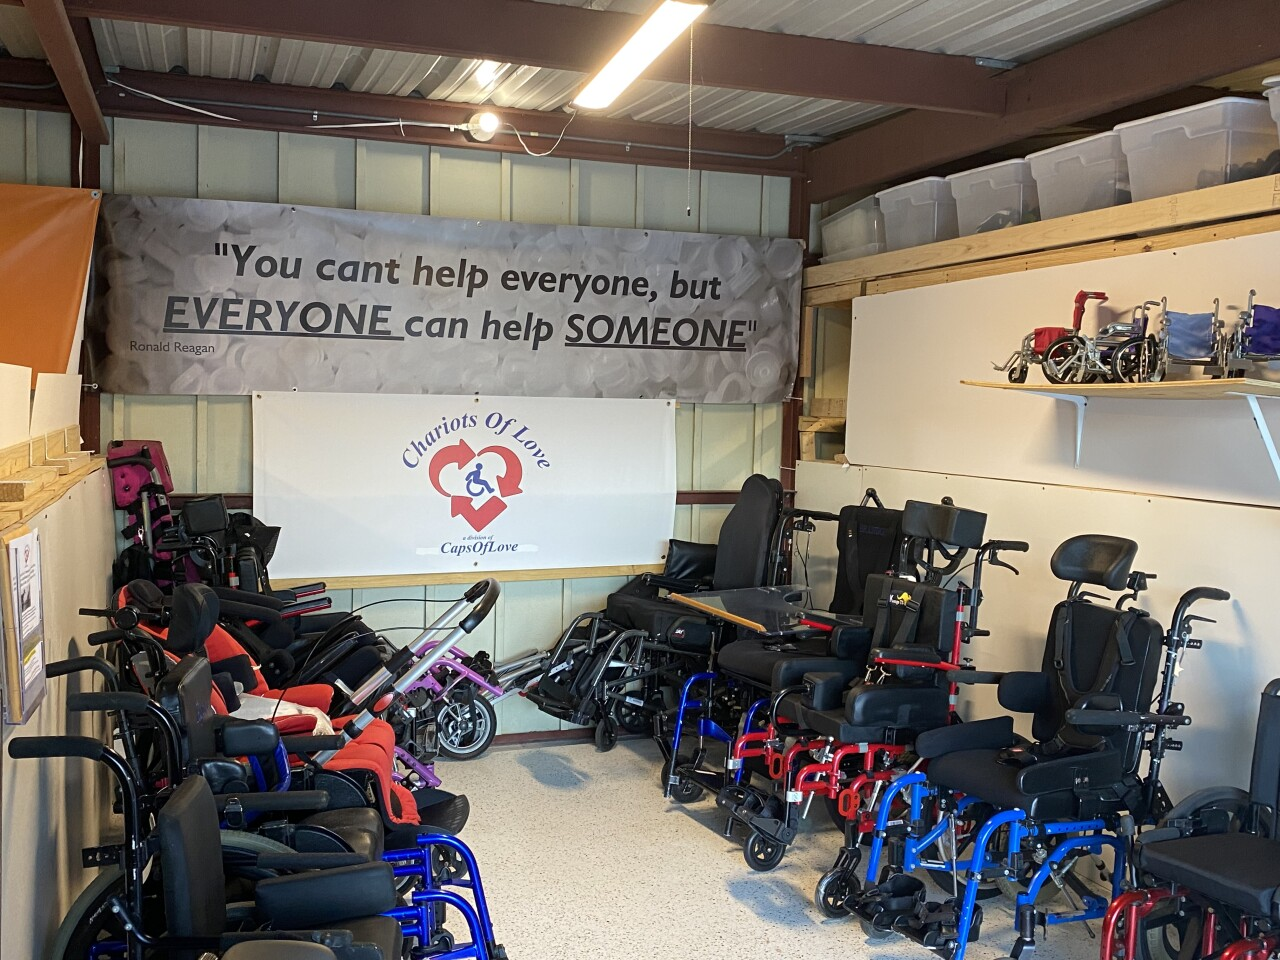 'You can't help everyone, but everyone can help someone' sign in front of 'Chariots of Love' wheelchairs